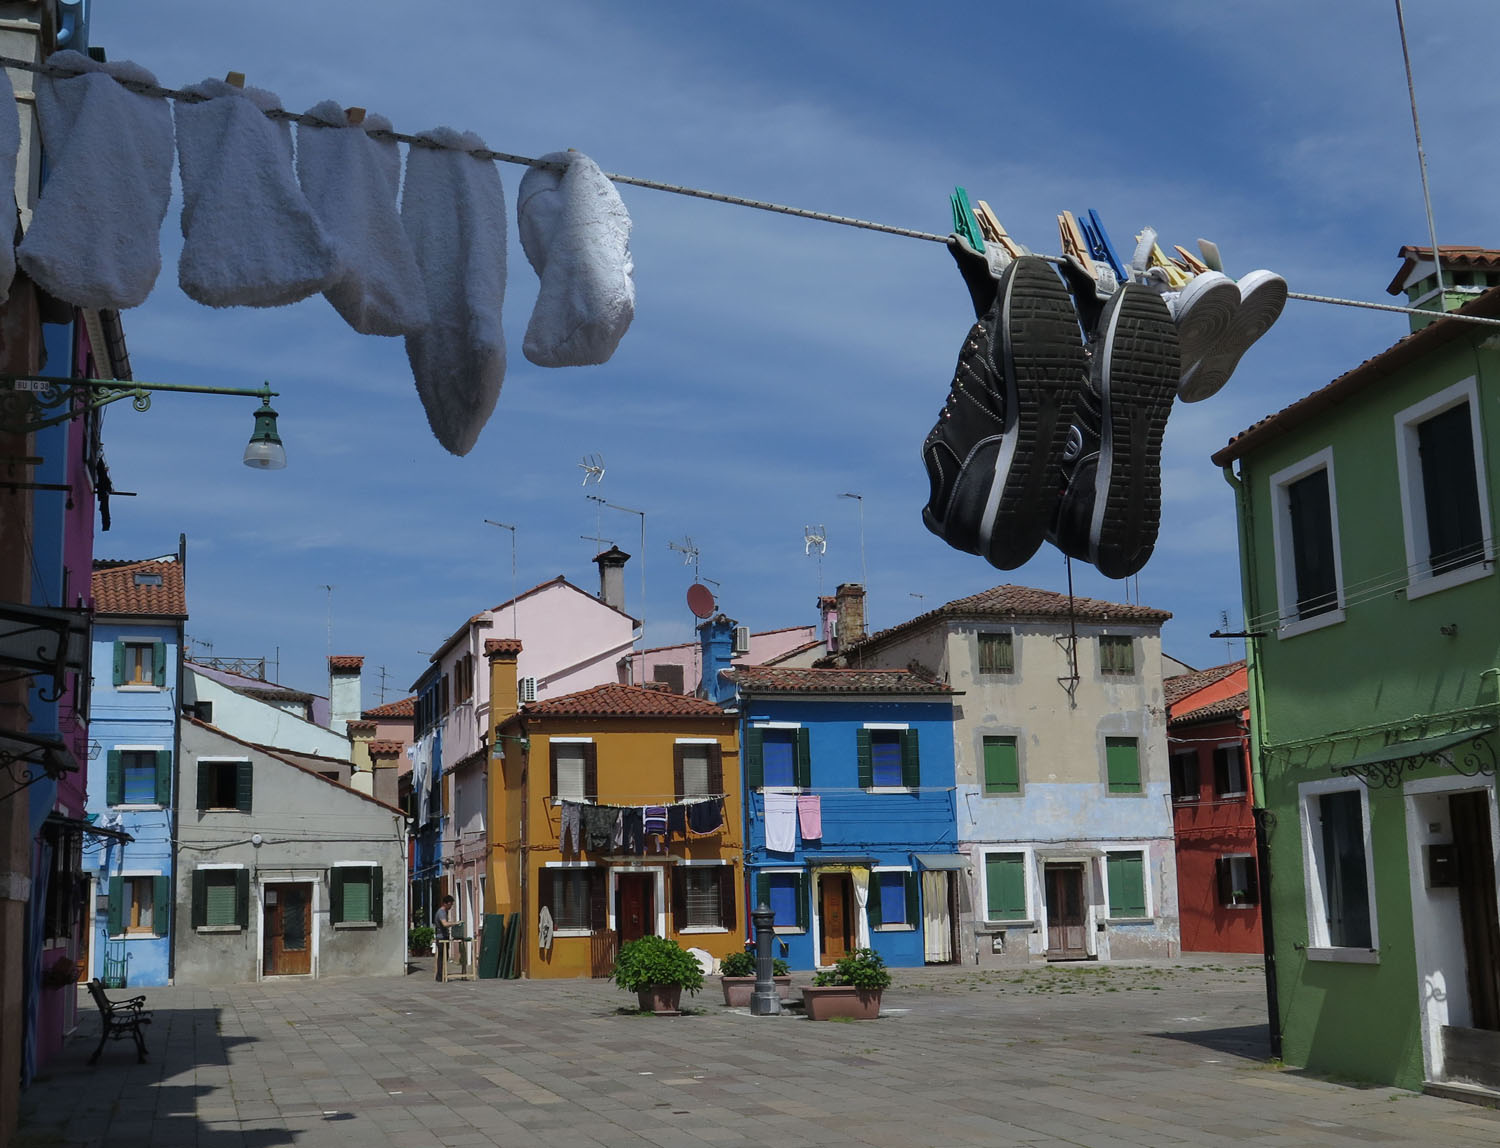 Italy-Venice-Islands-Burano-Colorful-Houses